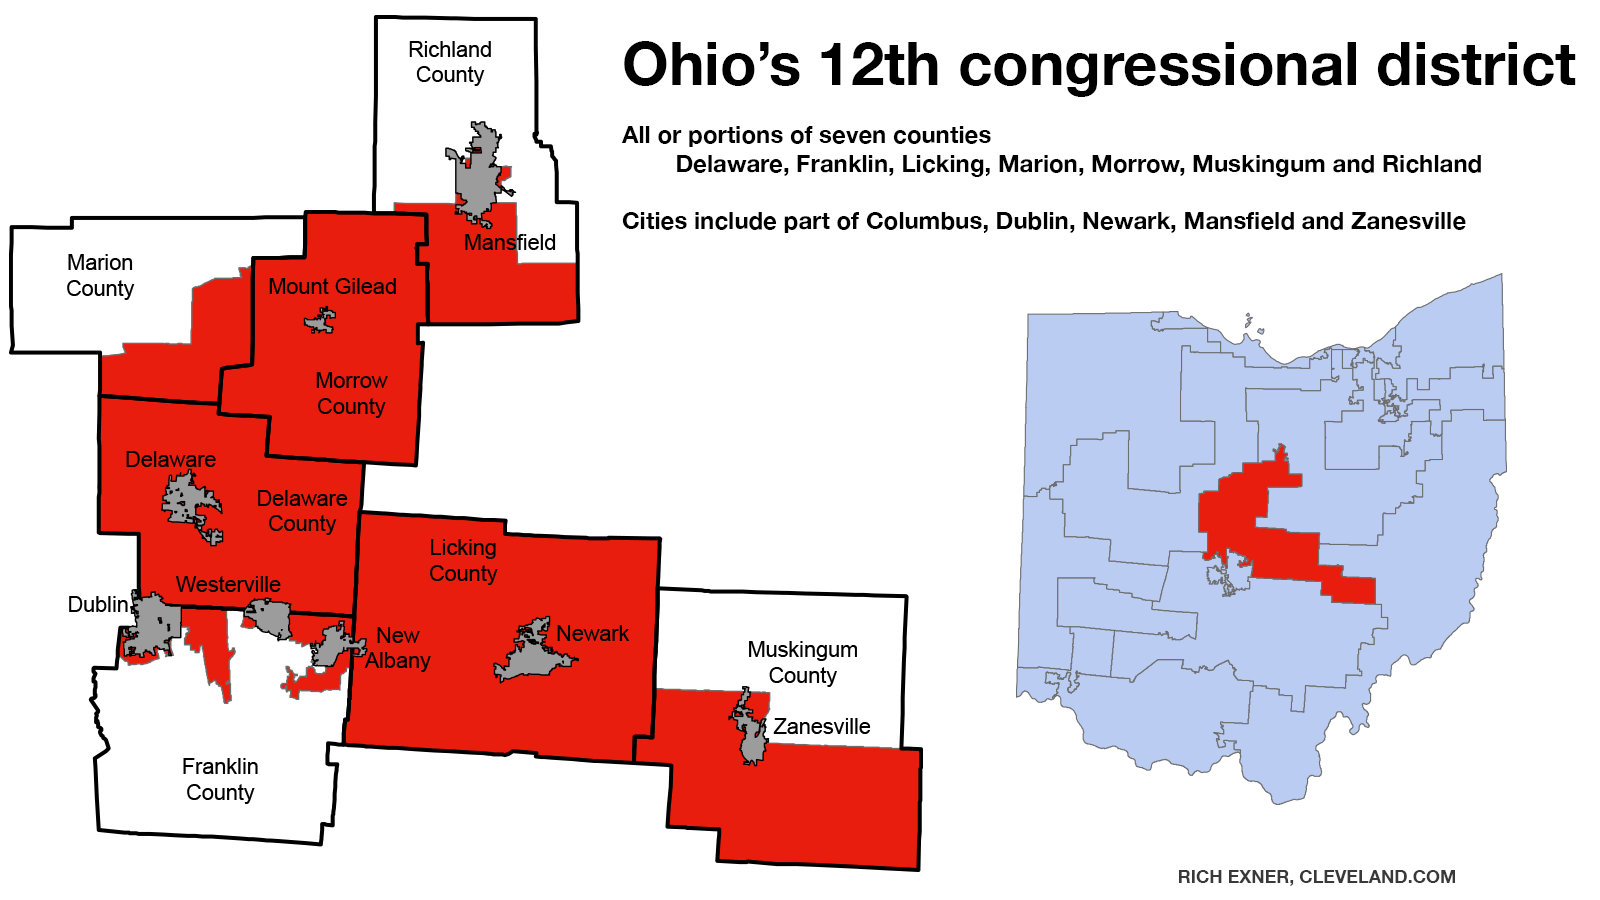 Map Makes Republicans Strong Favorites To Retain Pat Tiberi S 12th